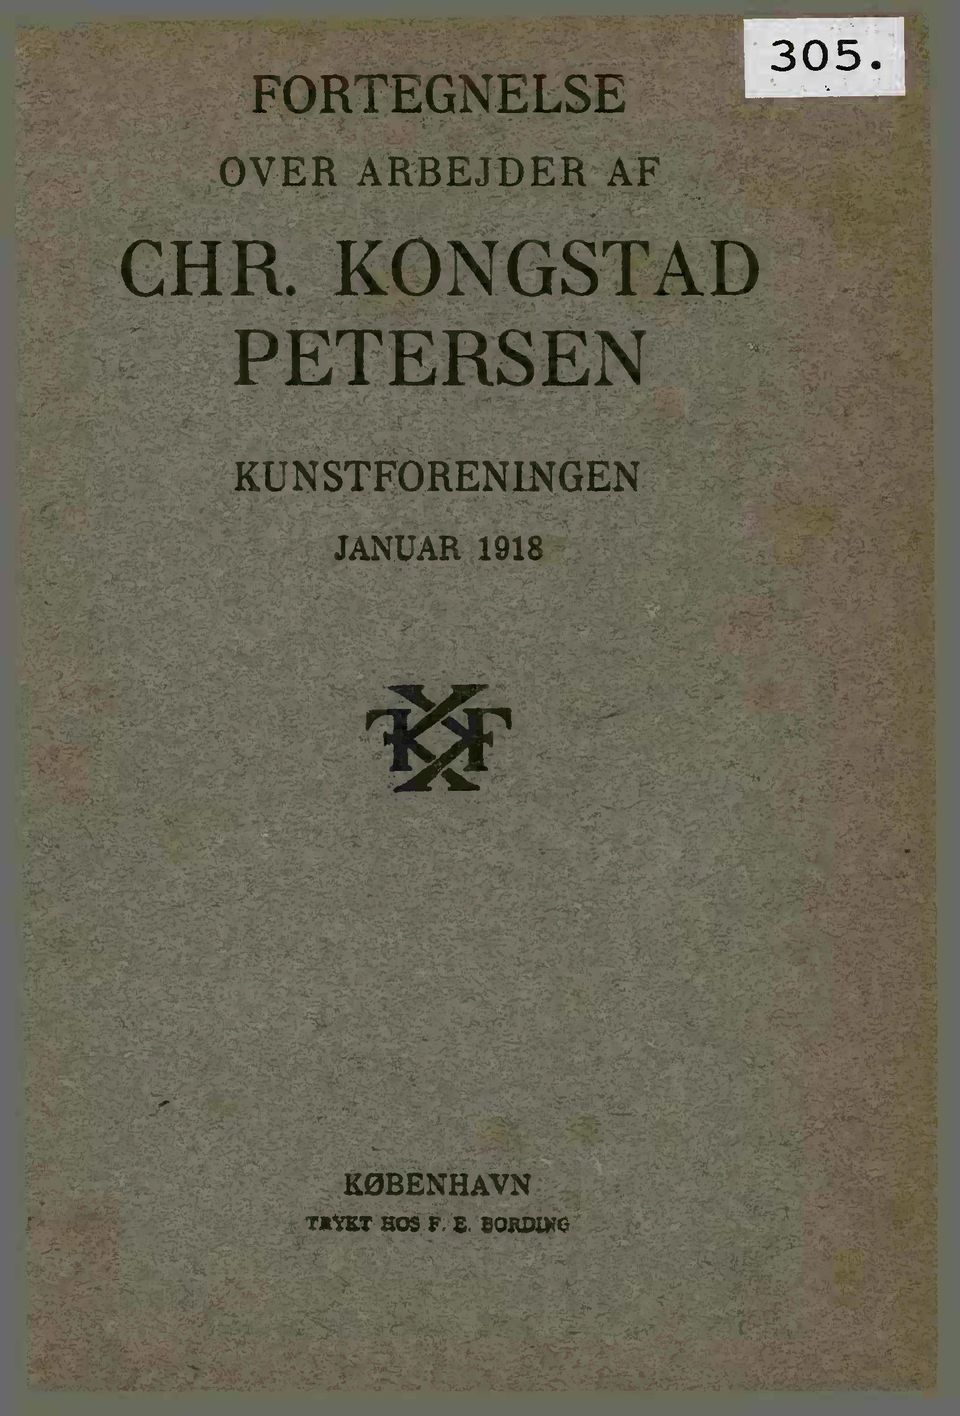 KONGSTAD PETERSEN